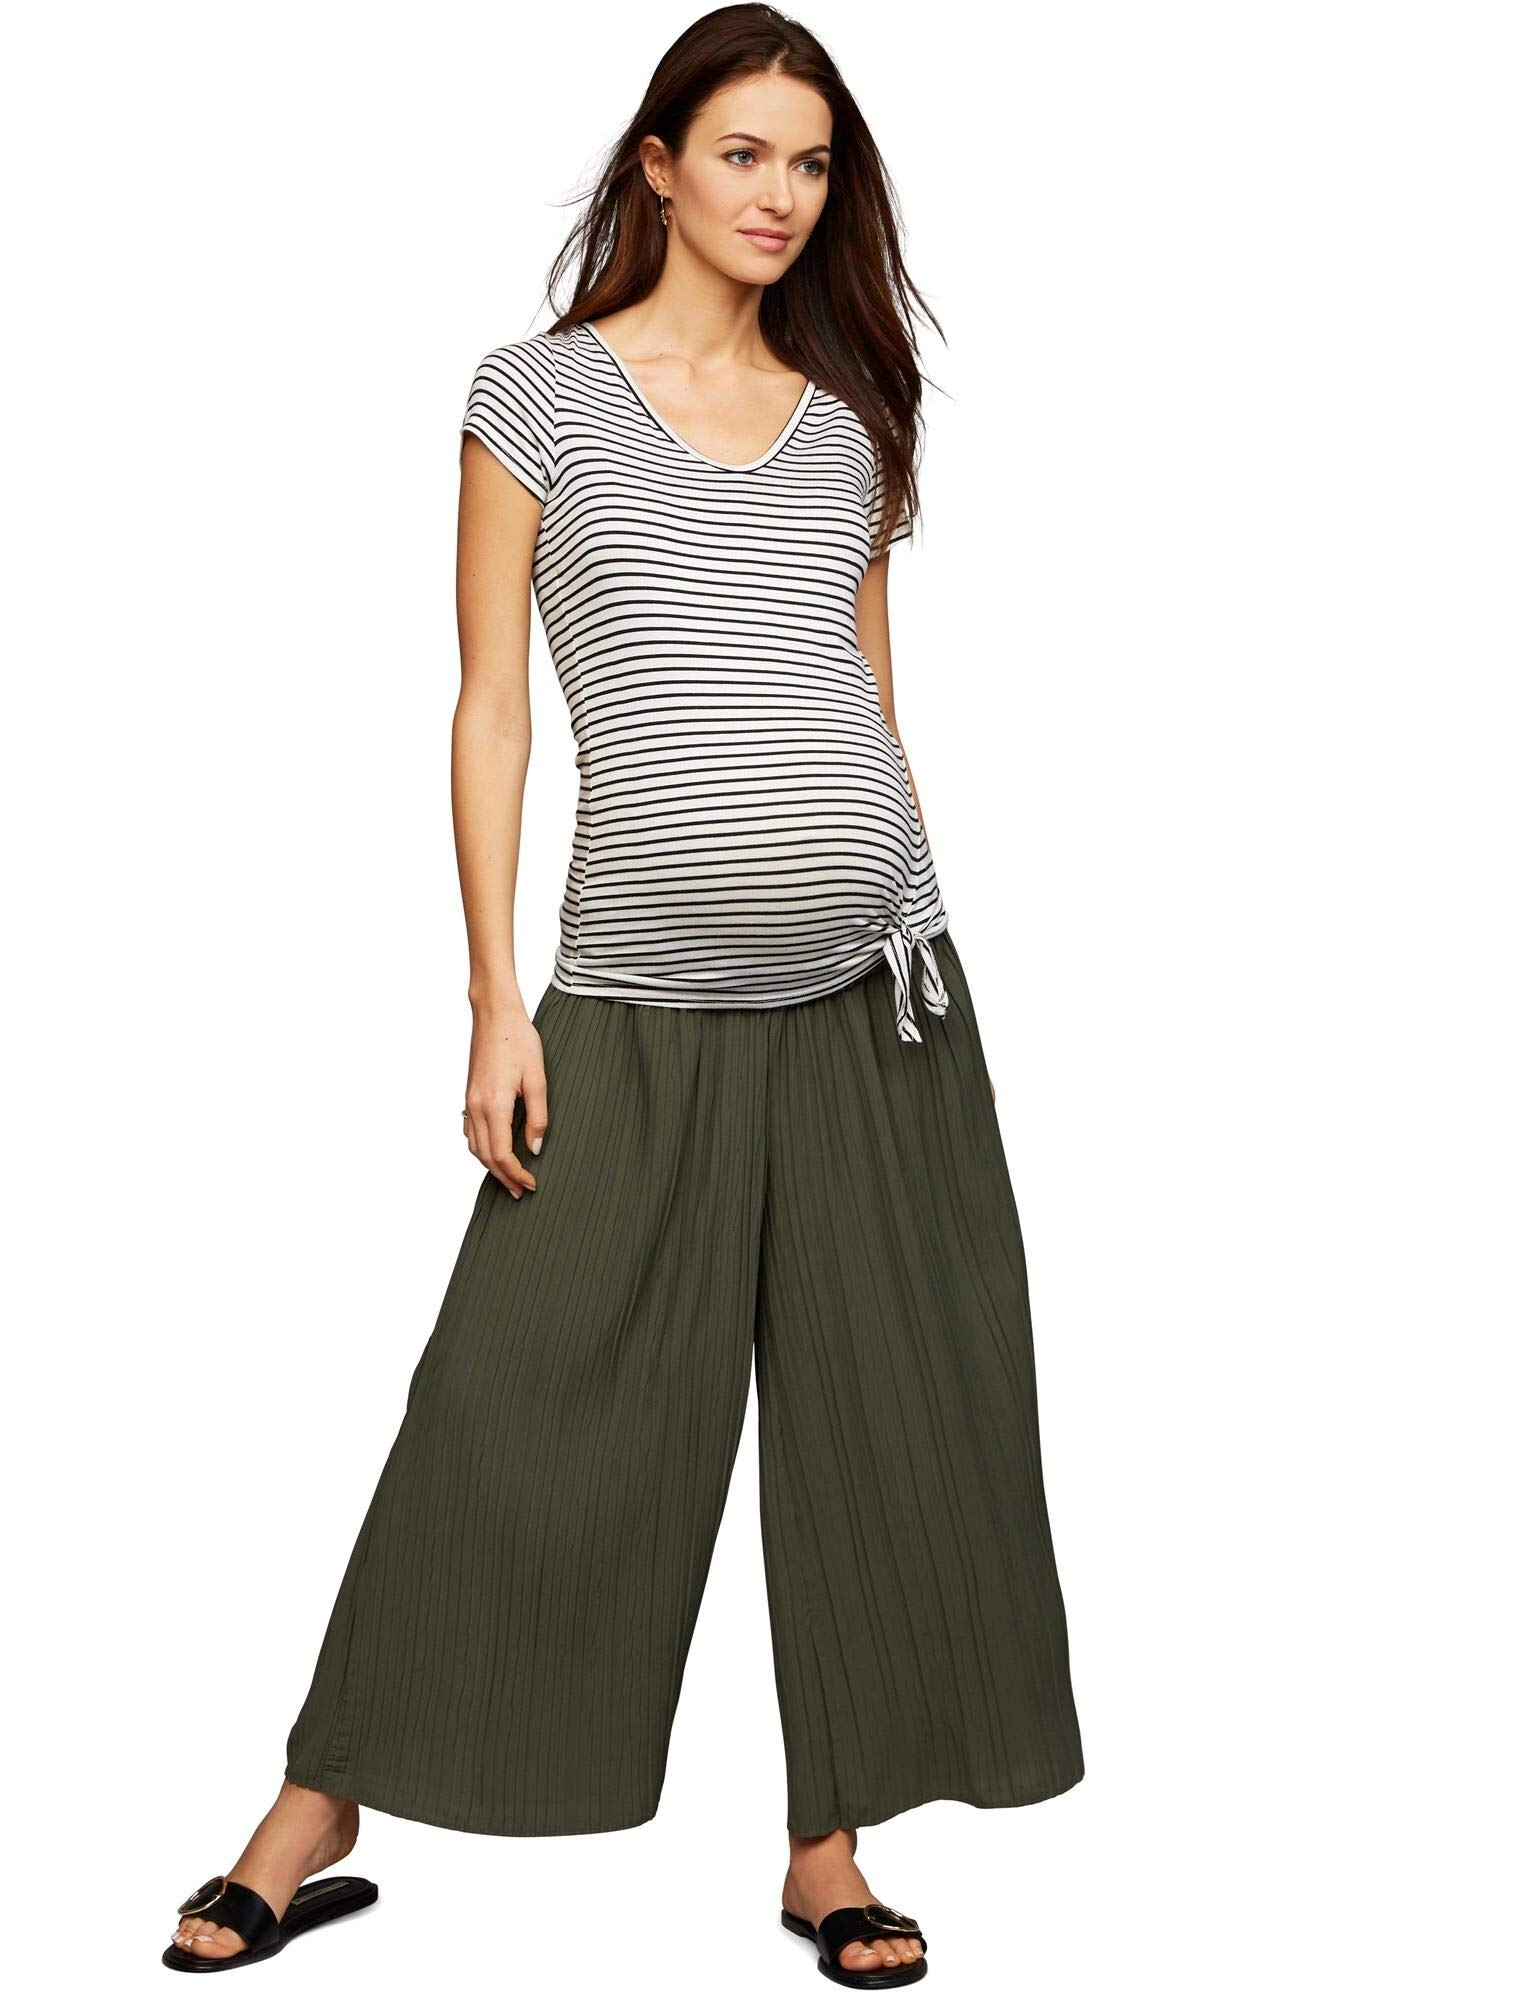 A Pea in the Pod Under Belly Crepe De Chine Wide Leg Maternity Pants Olive by A Pea in the Pod